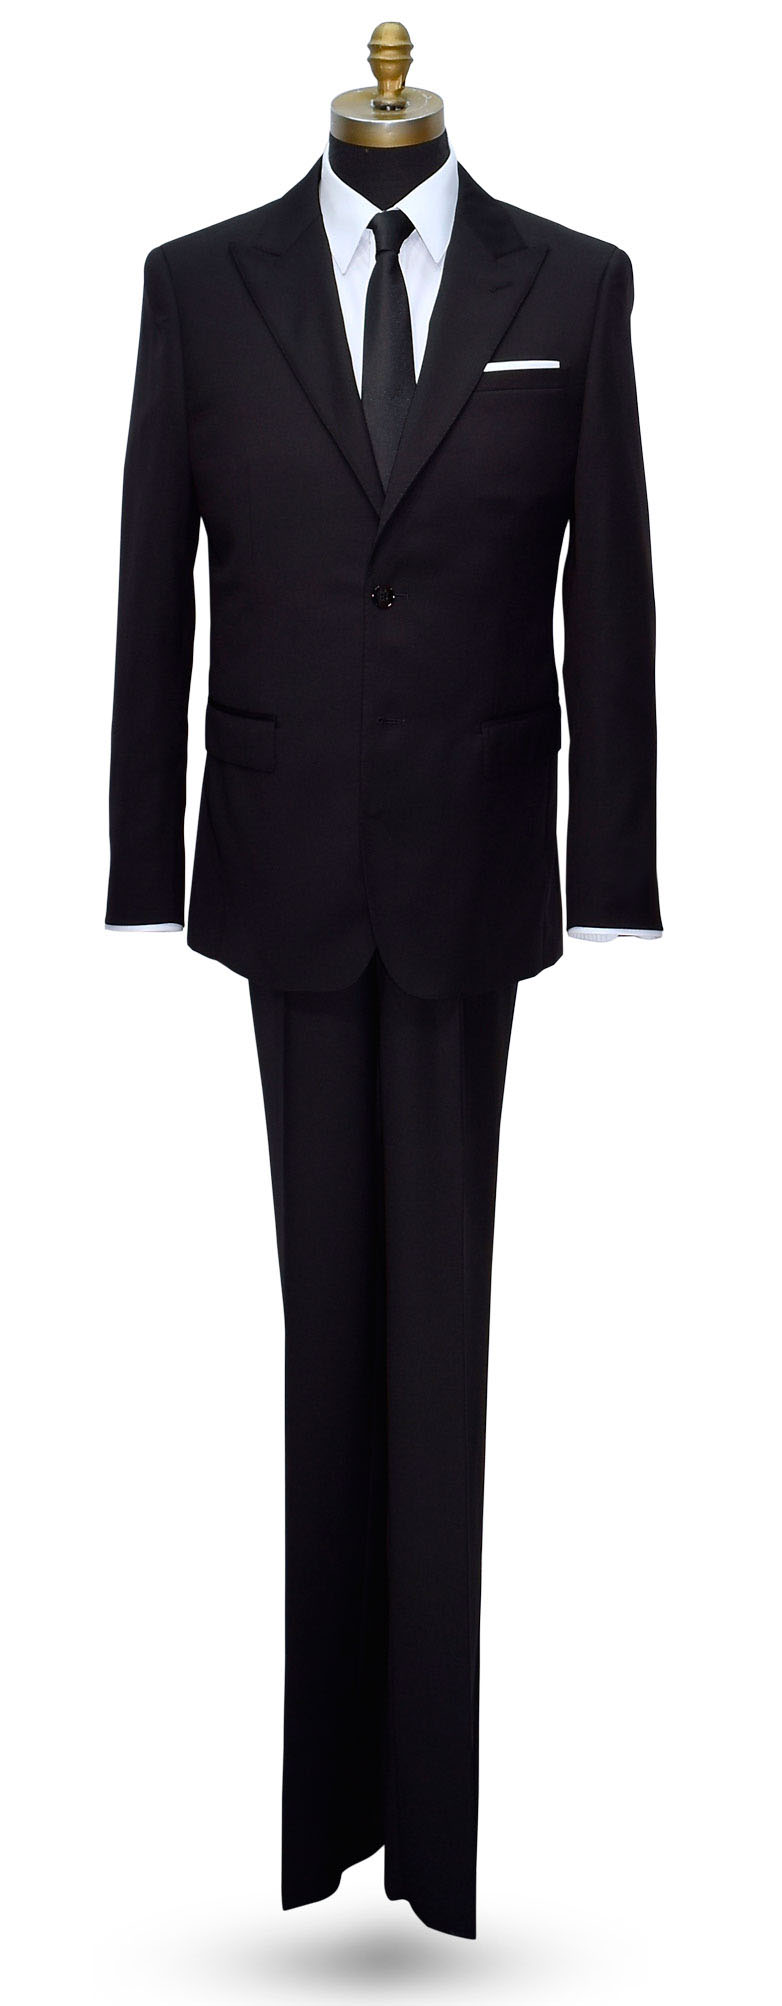 BLACK 2 PIECE MENS SUIT 100% LUXURY WOOL